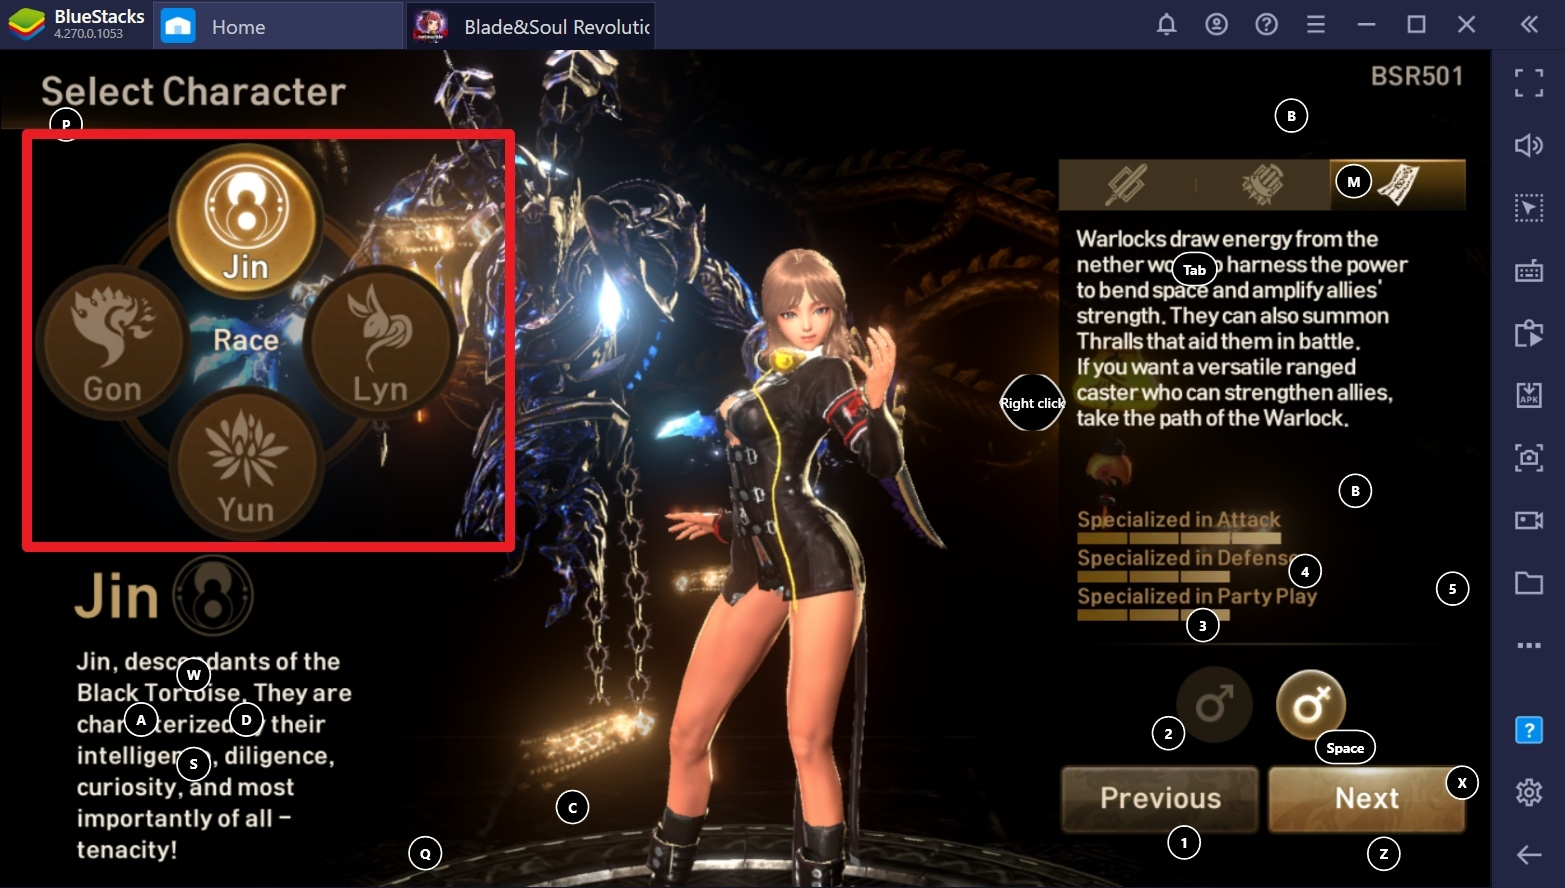 Blade and Soul Revolution: Beginners Guide with Important Tips to Level Up Fast